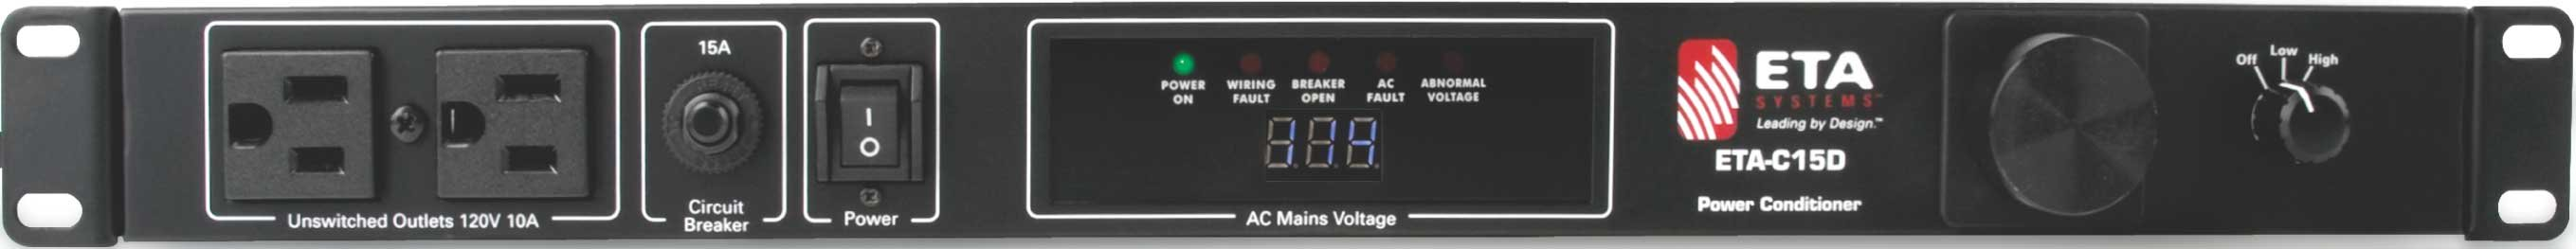 Power Conditioner, 10 Outlets (8 Rear, 2 Front), 15A, Digital Voltmeter